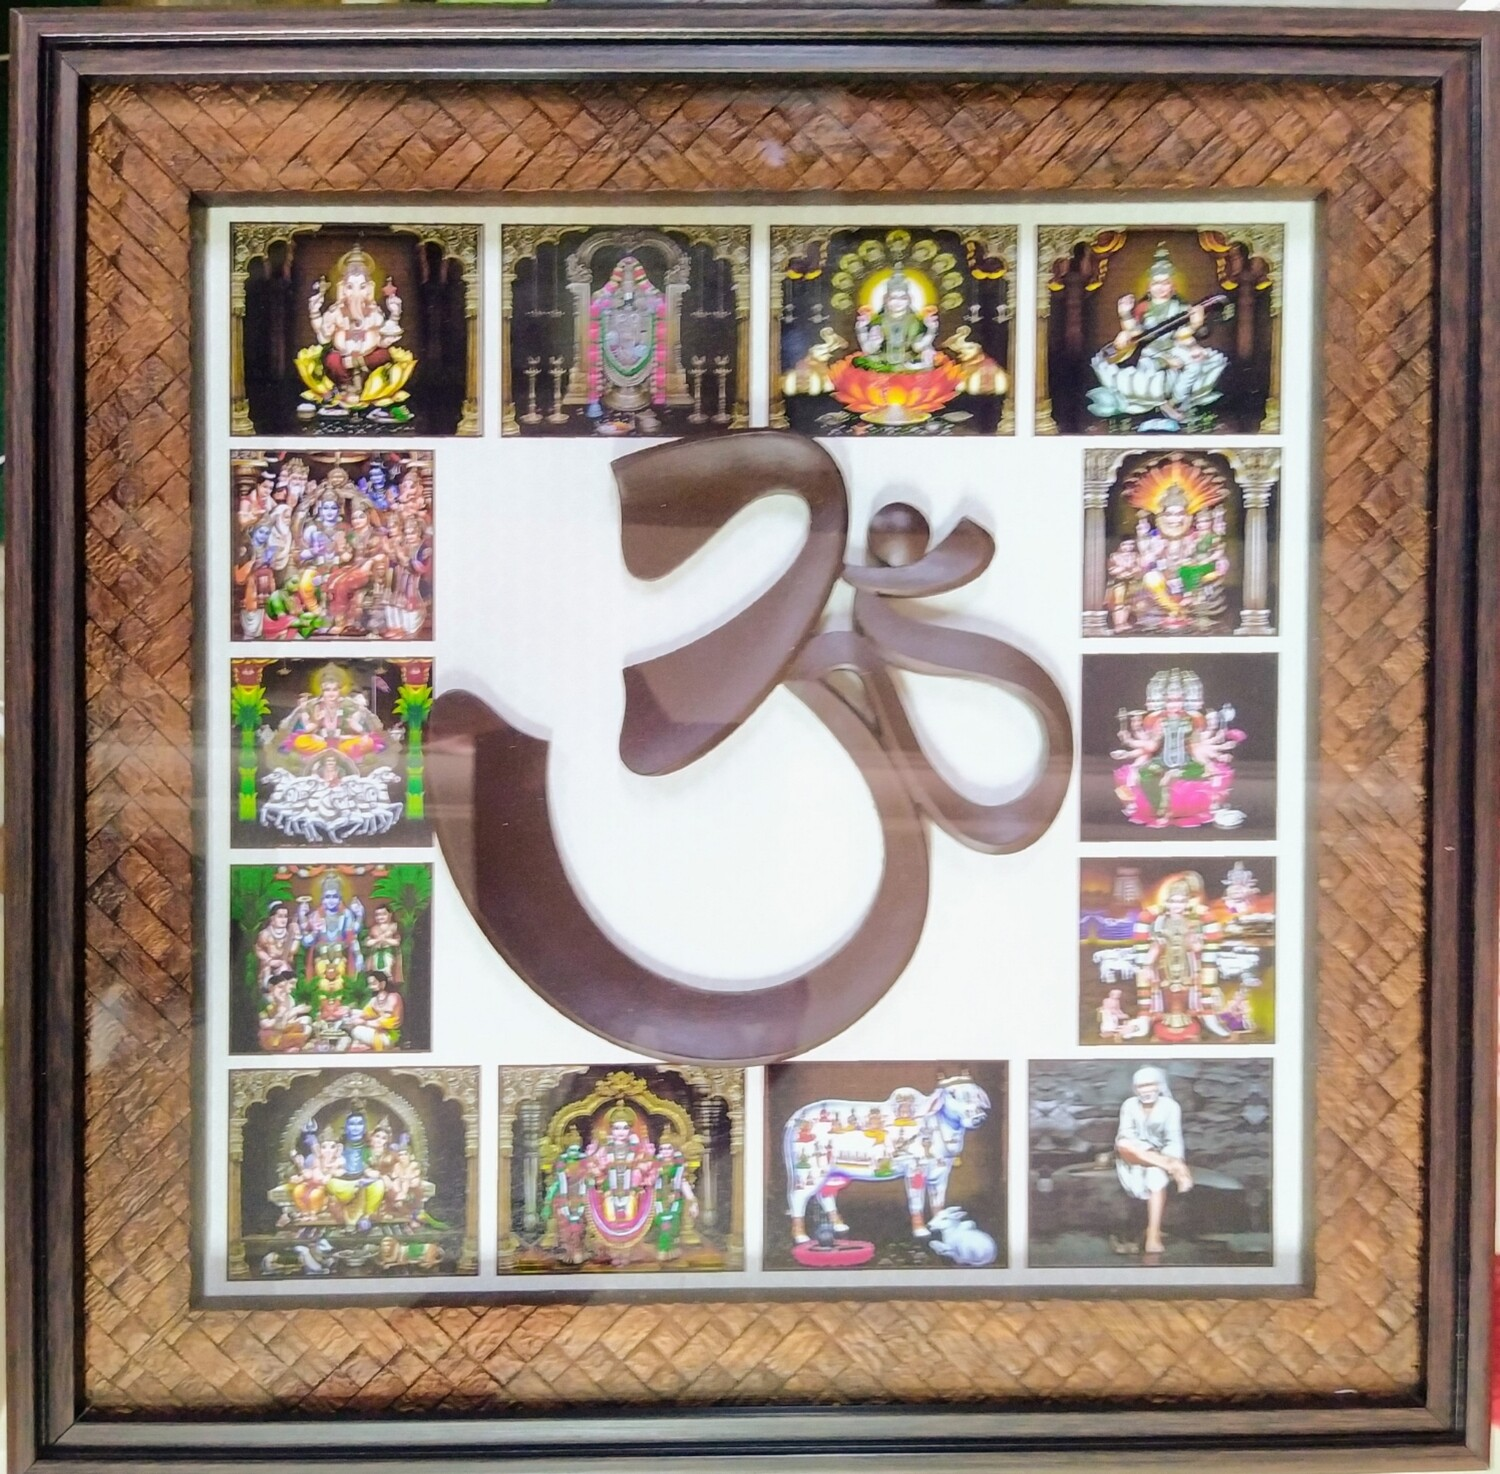 Om Crafted Work with All in one God images Photo Frame